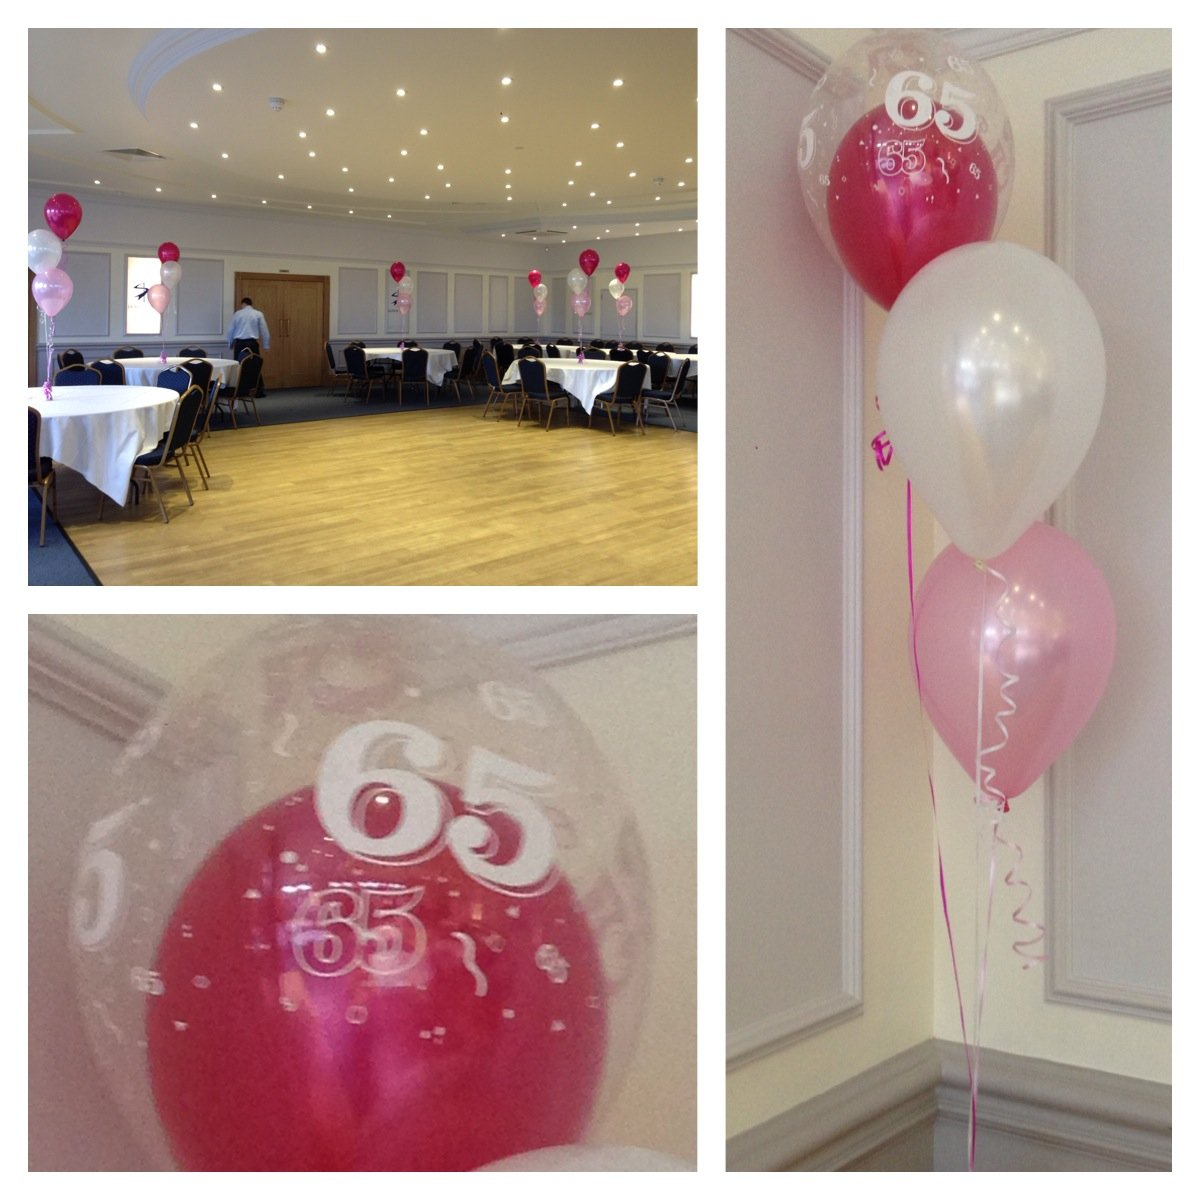 65th Birthday balloons at Saxon Hall